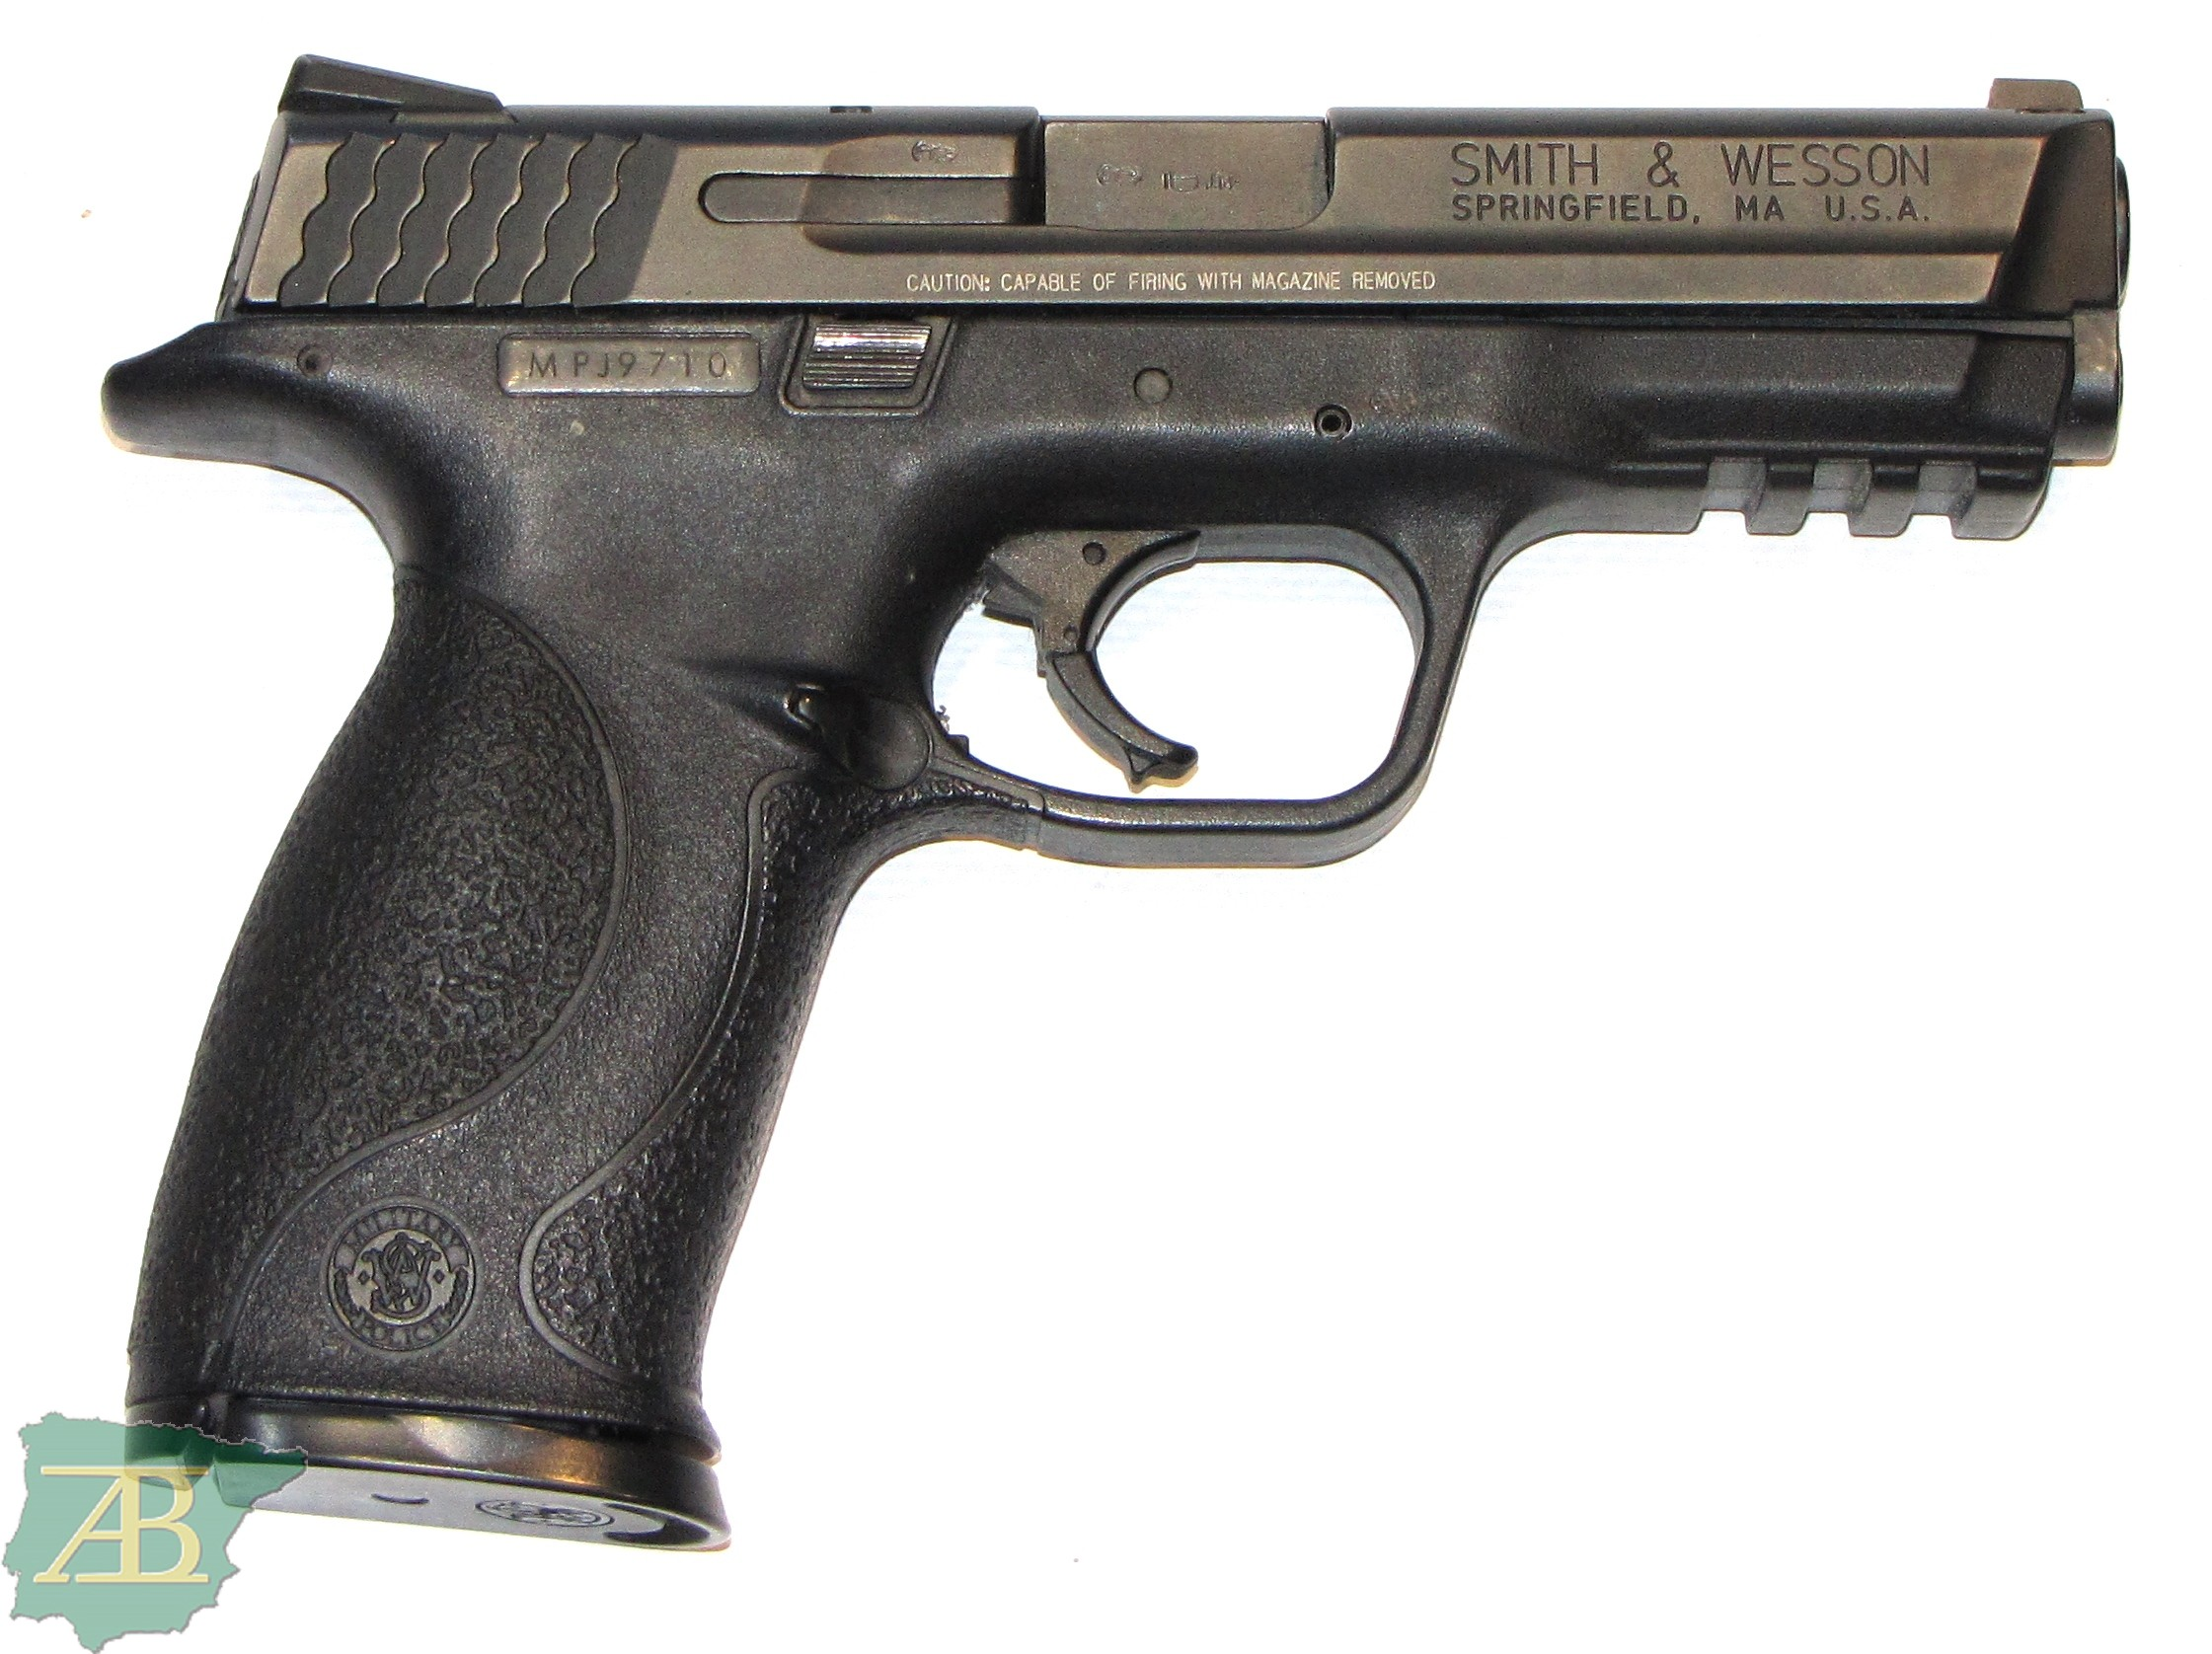 PISTOLA SMITH & WESSON 9 Mm PB Ref. 5547